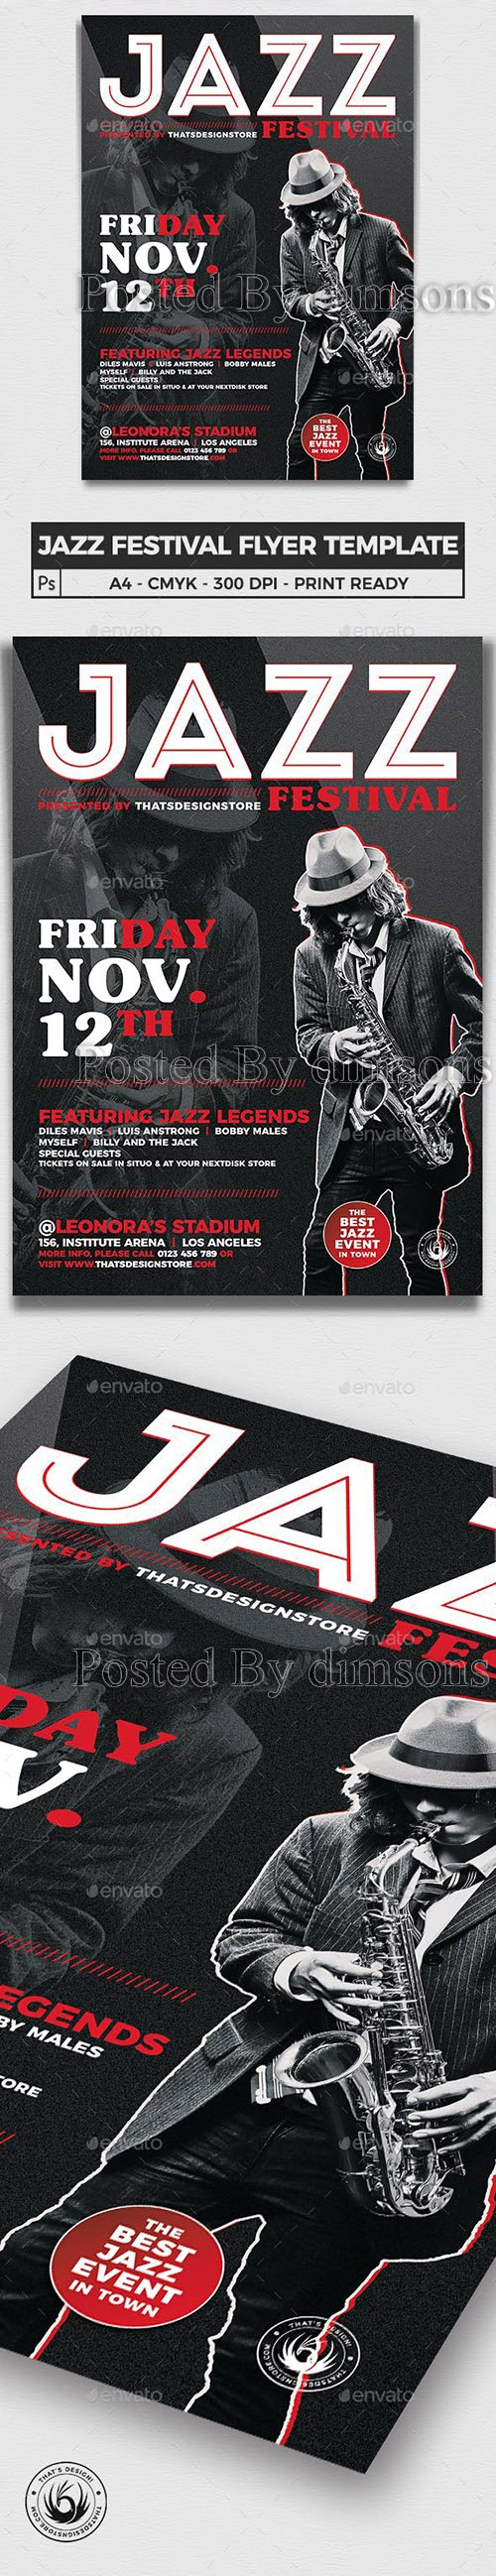 Jazz Festival Flyer Template V3 11848741